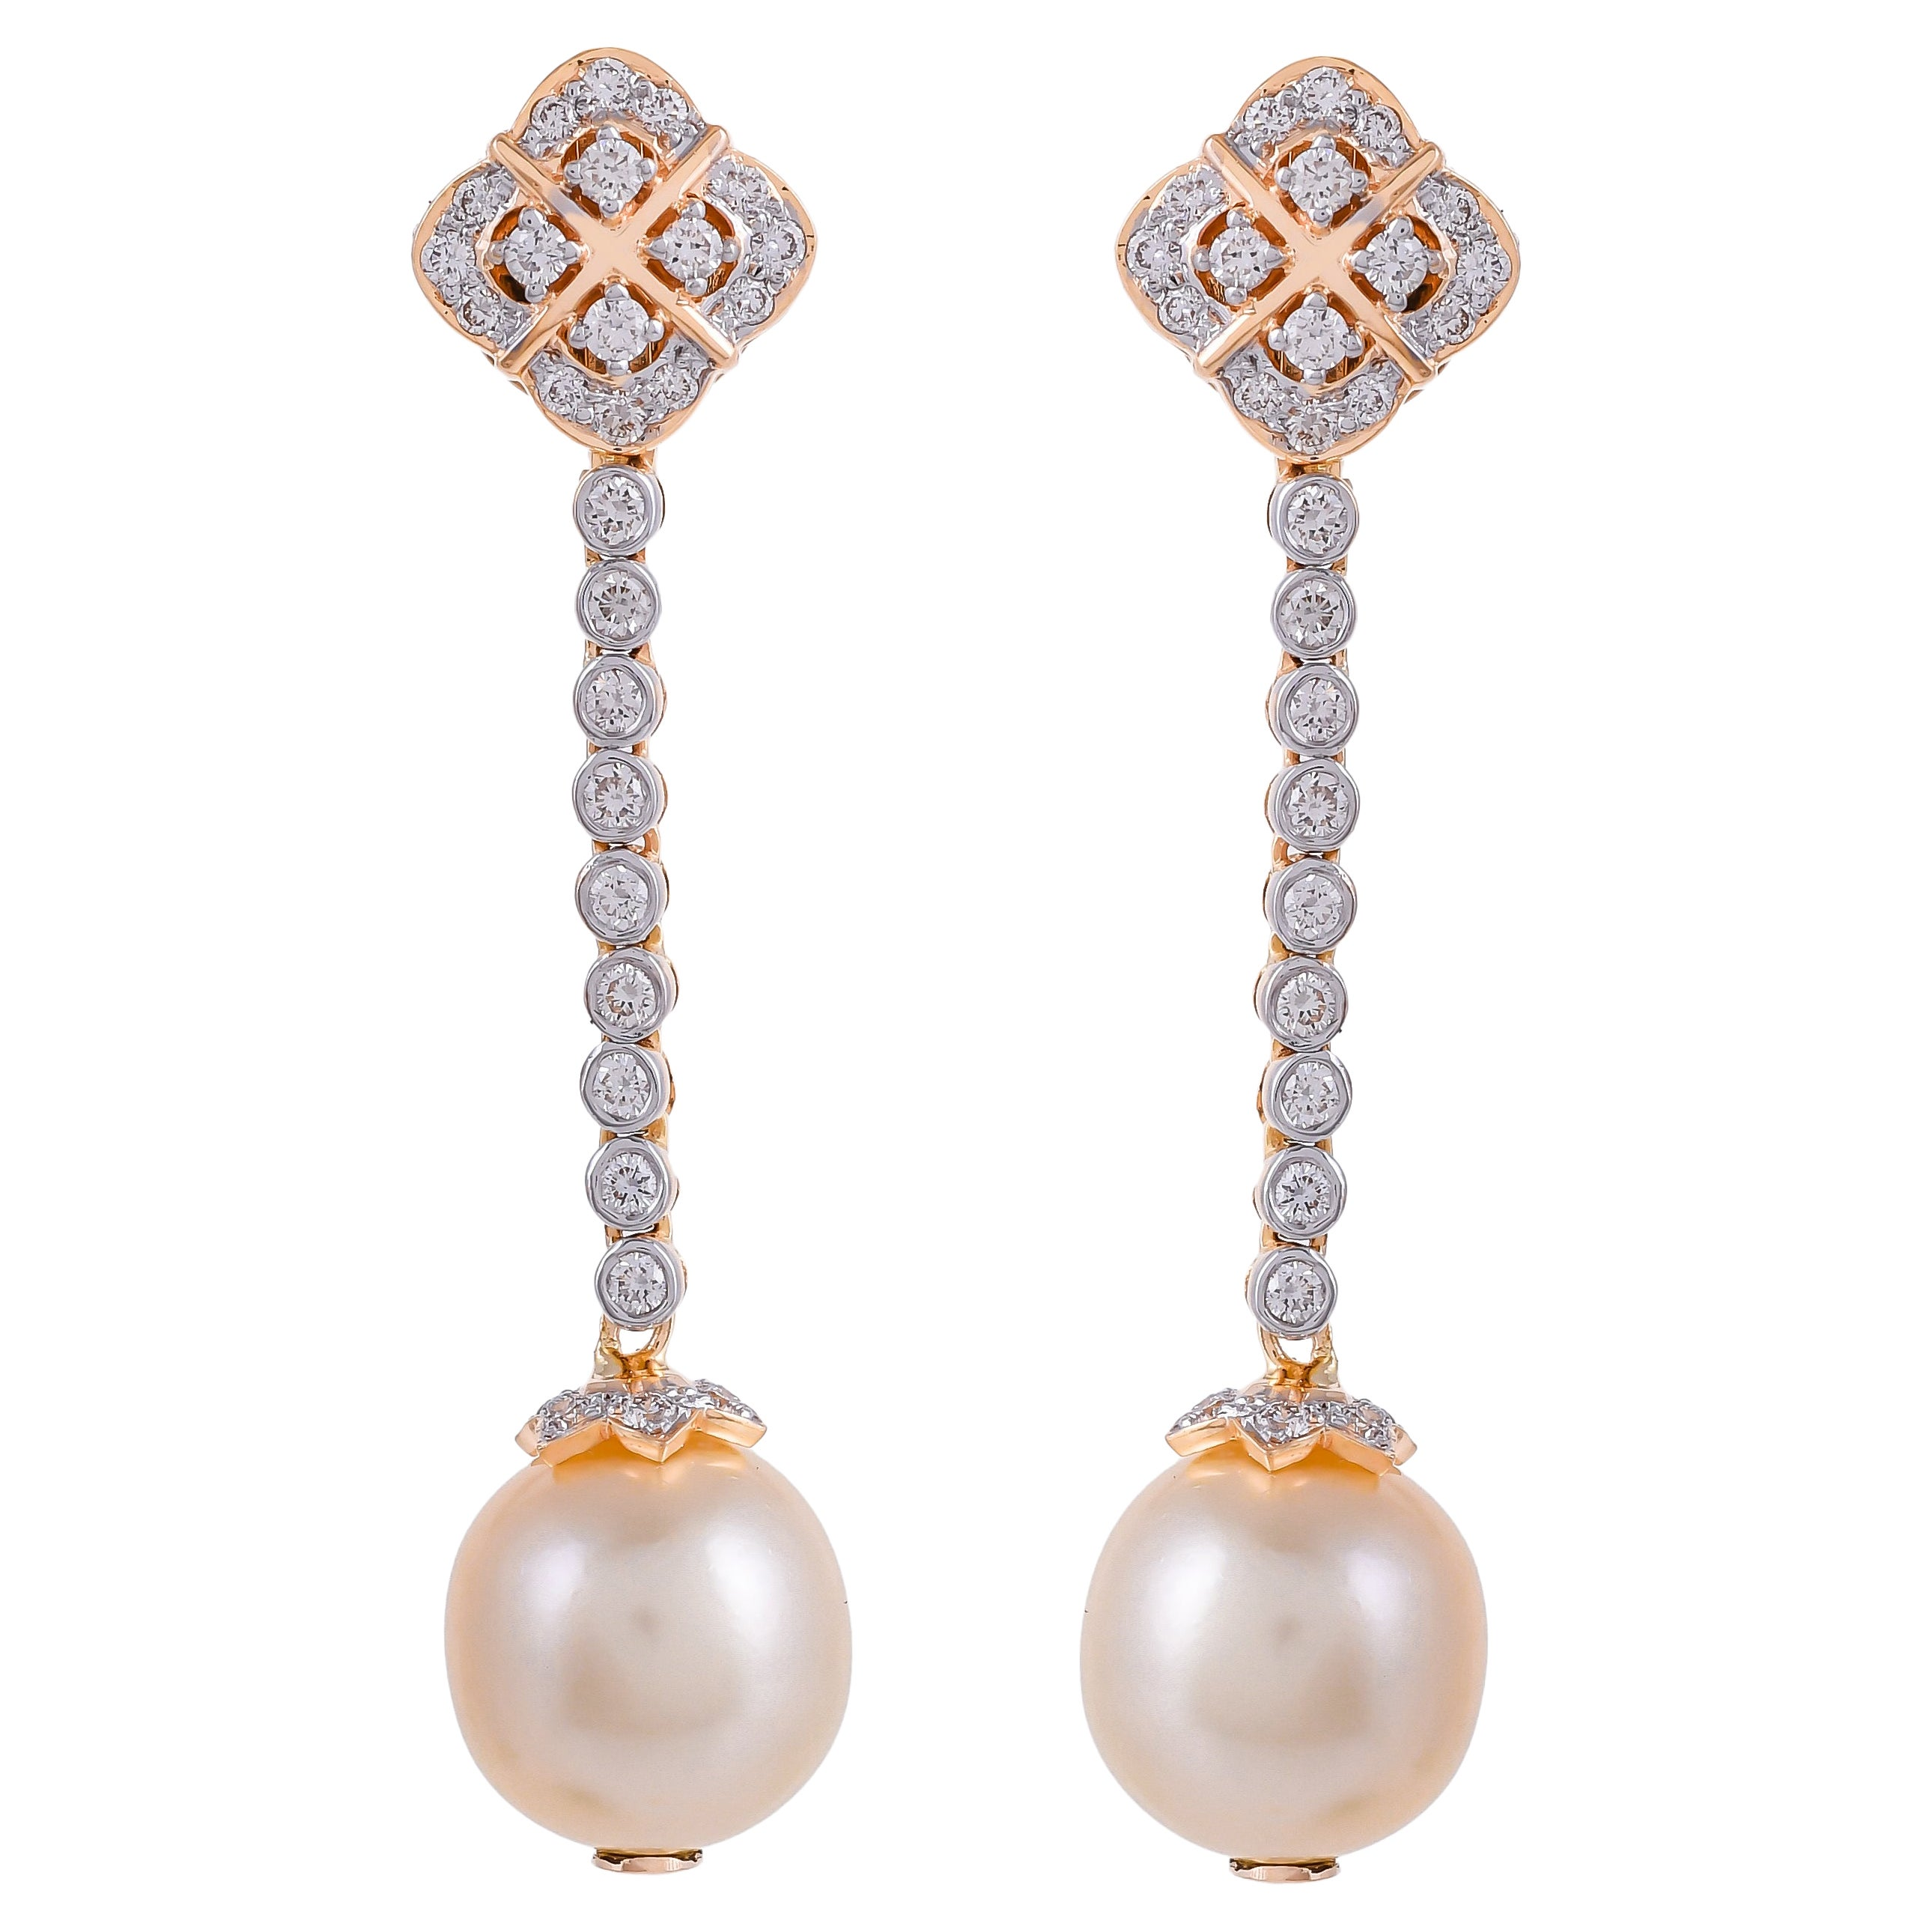 22.14 Carats South Sea Pearl and Diamond 18kt Yellow Gold Dangle Earrings